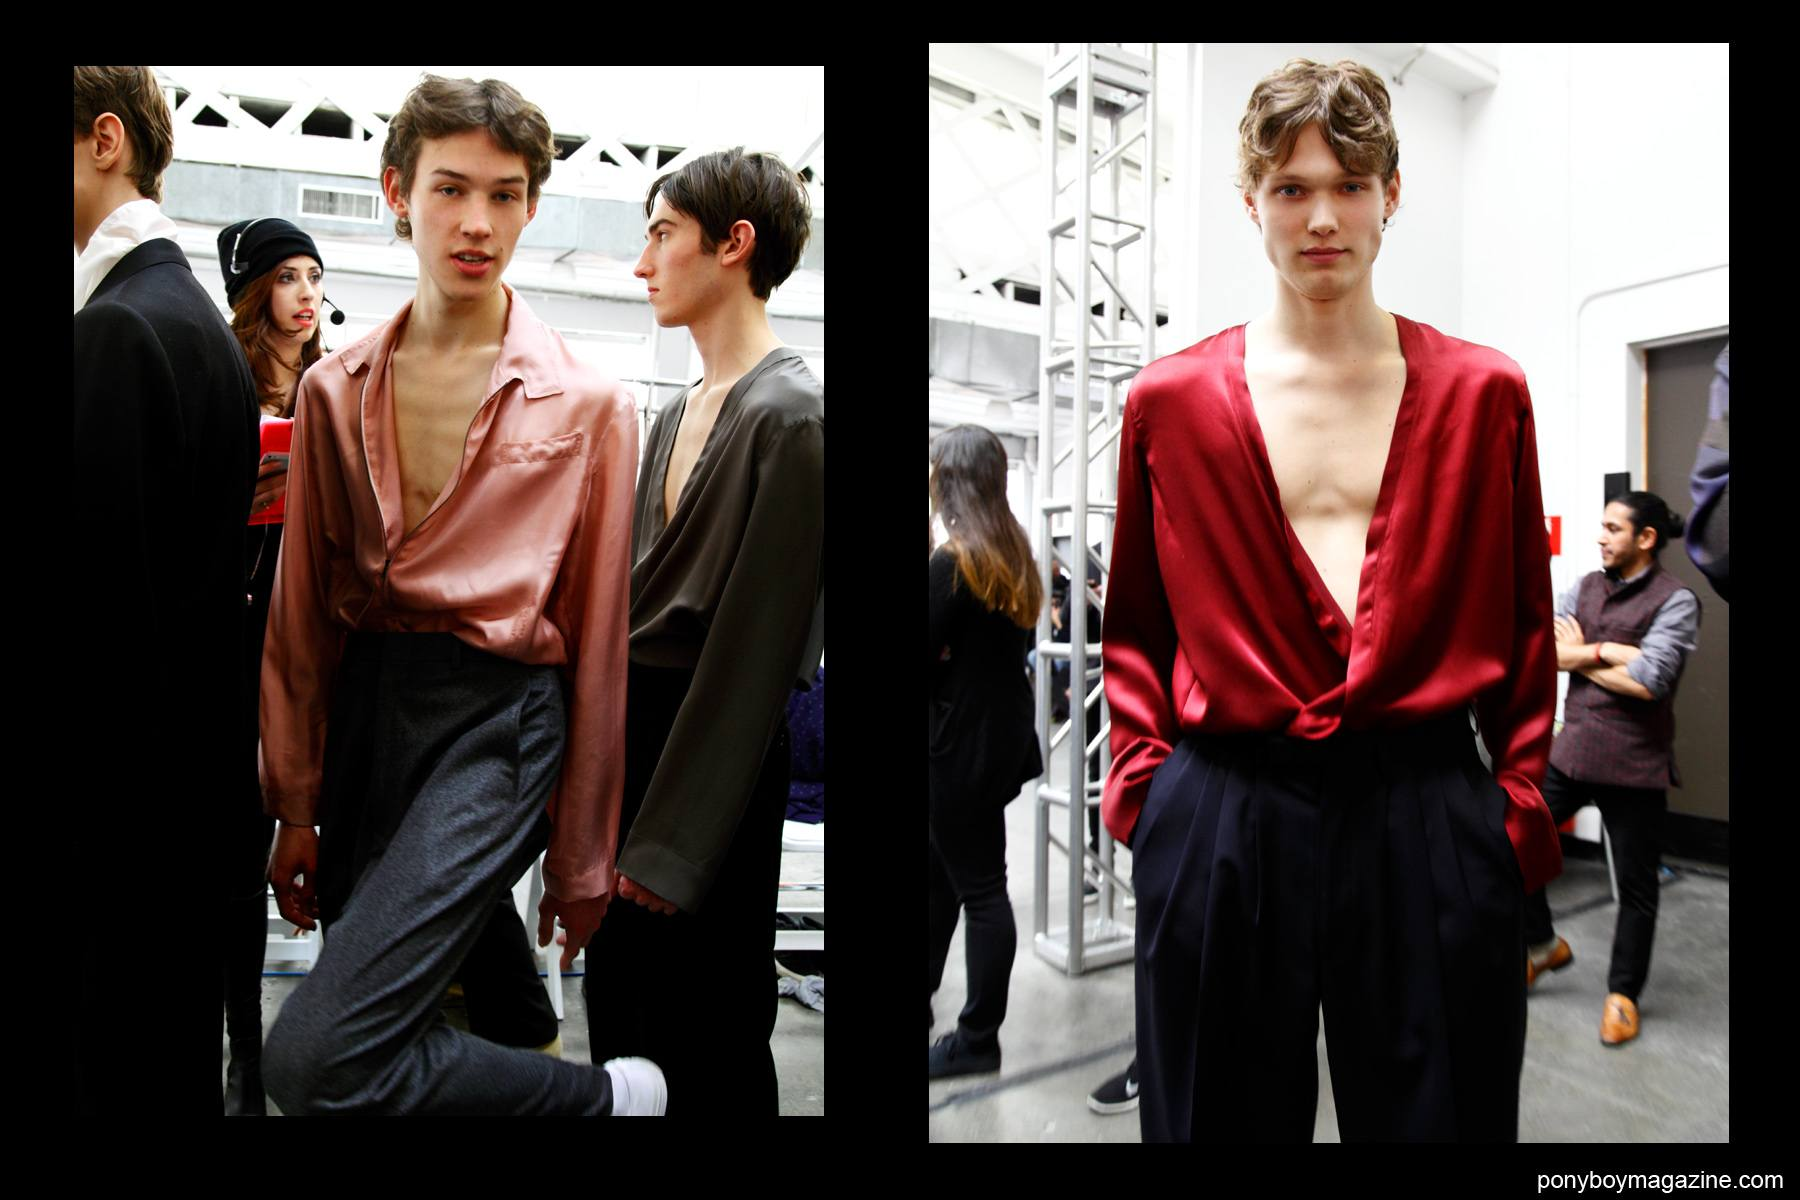 Male models photographed backstage in Duckie Brown F/W15 collection at New York City's Industria Studios. Photograph by Alexander Thompson for Ponyboy magazine.